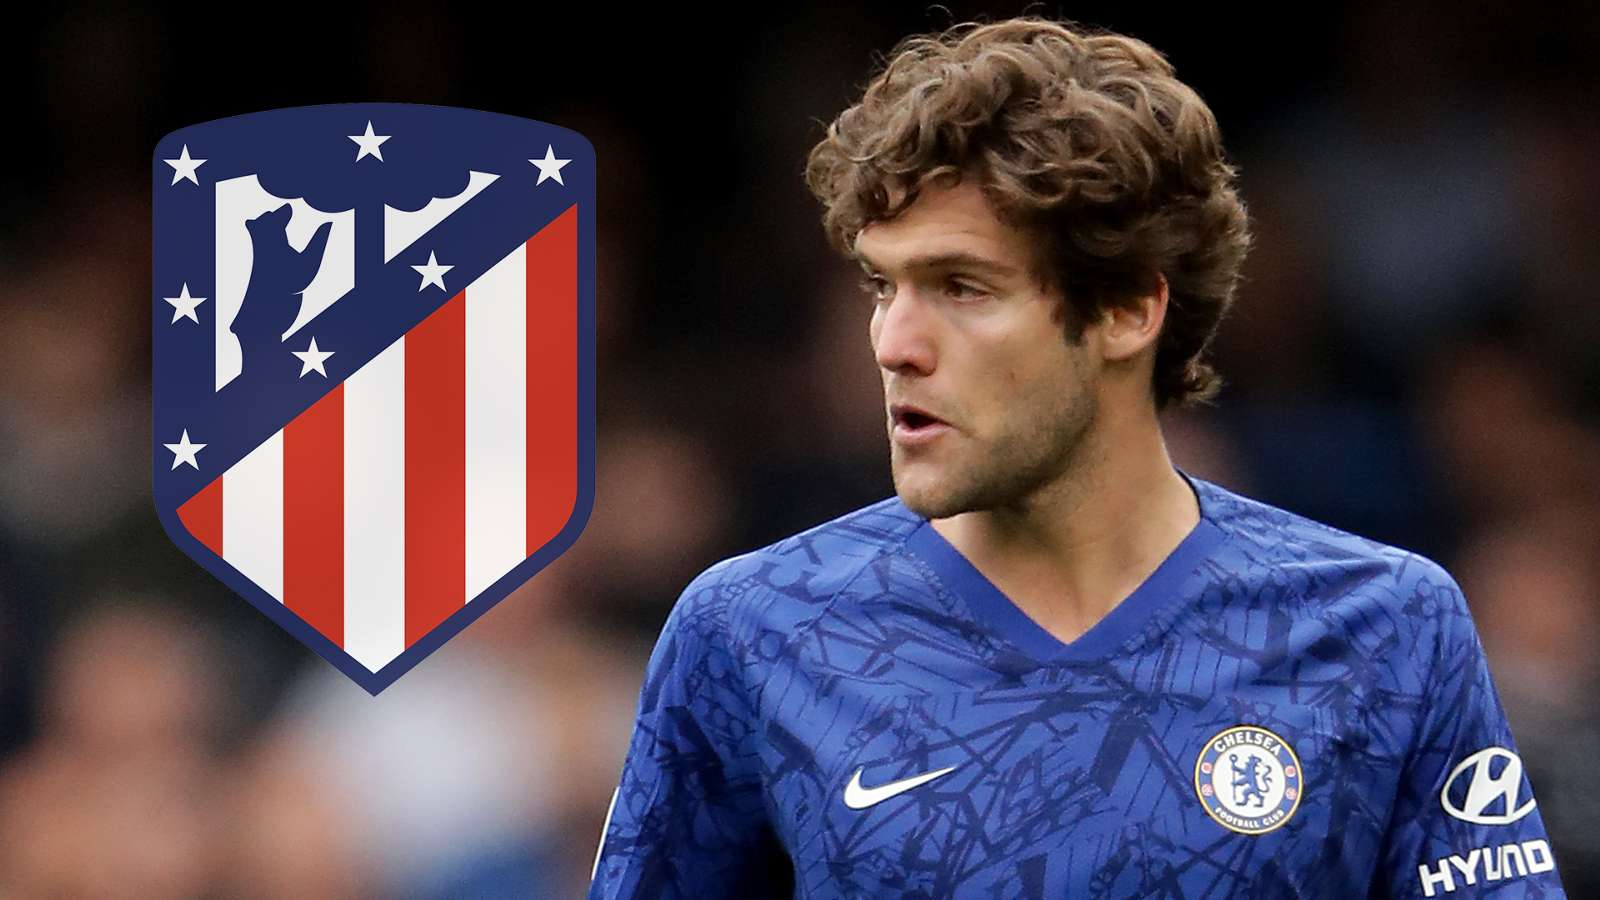 Atletico Madrid Go All Out For Chelsea Star as Transfer Business Takes Shape